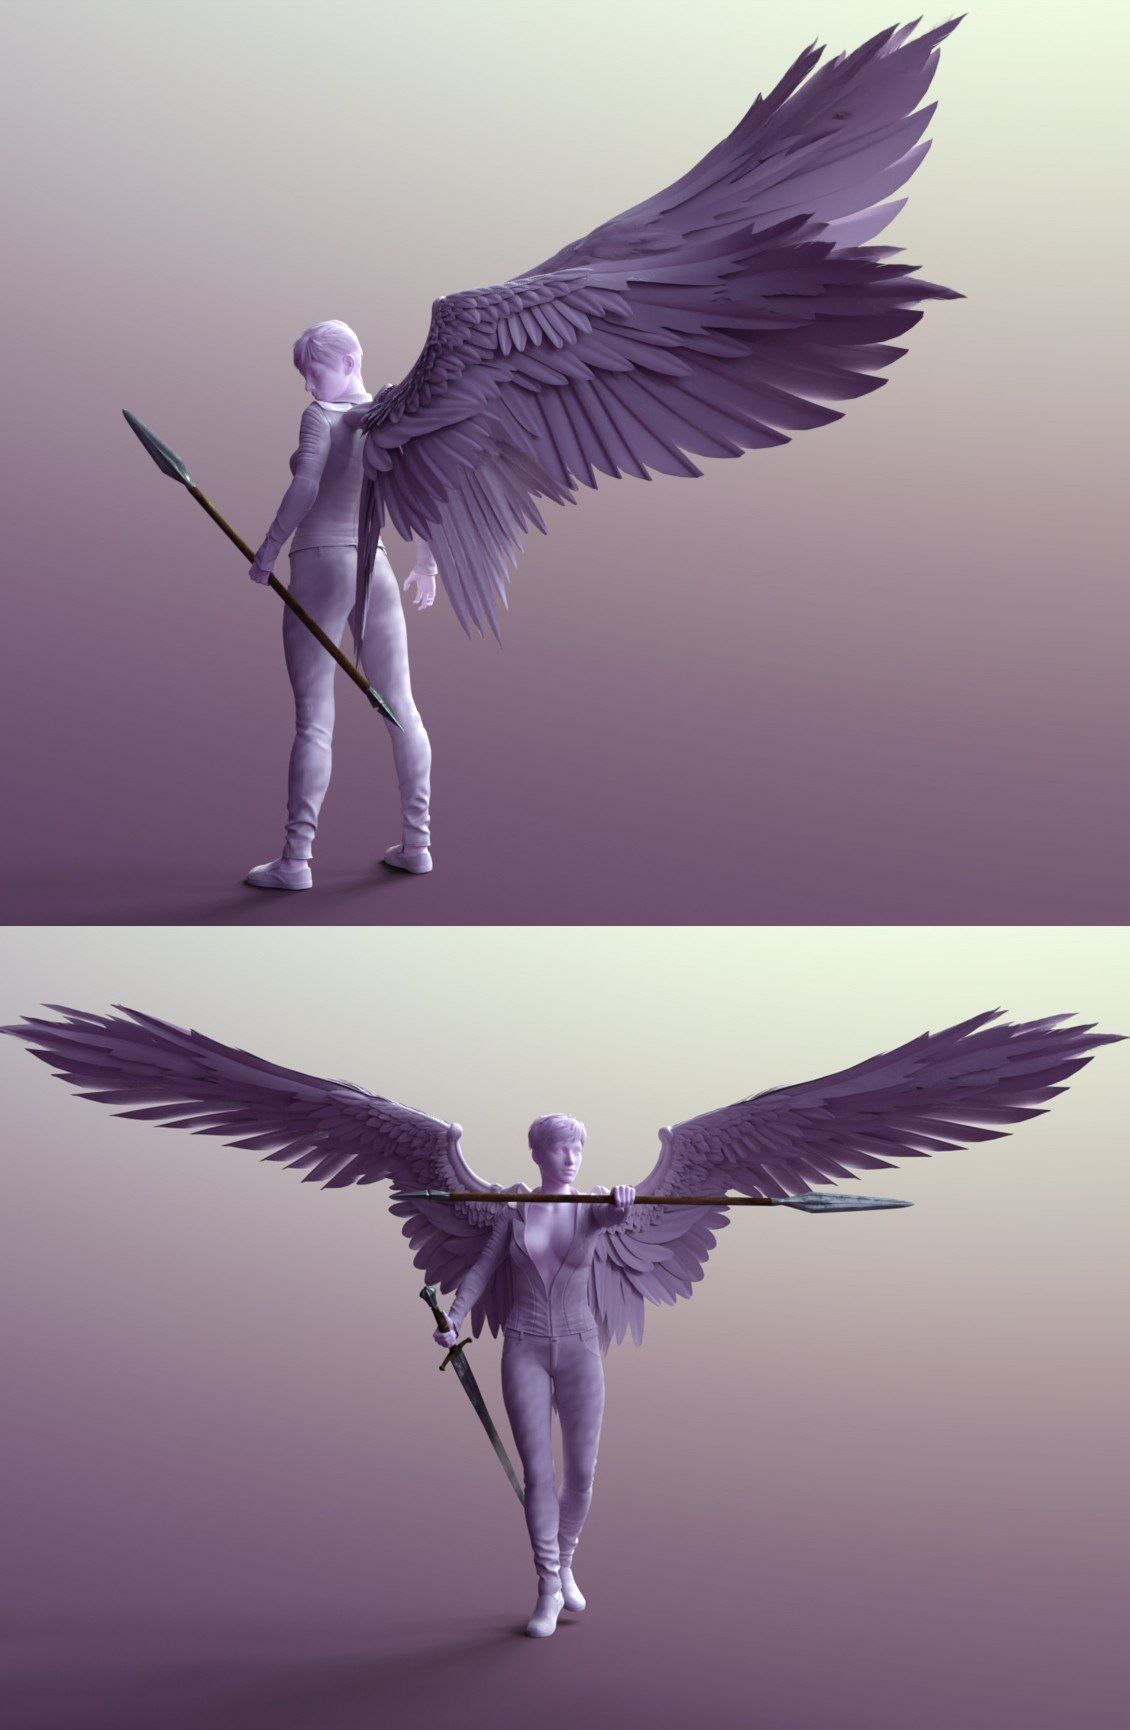 Photo of Sacrosanct: Poses and Expressions for Genesis 8 and Morningstar Wings